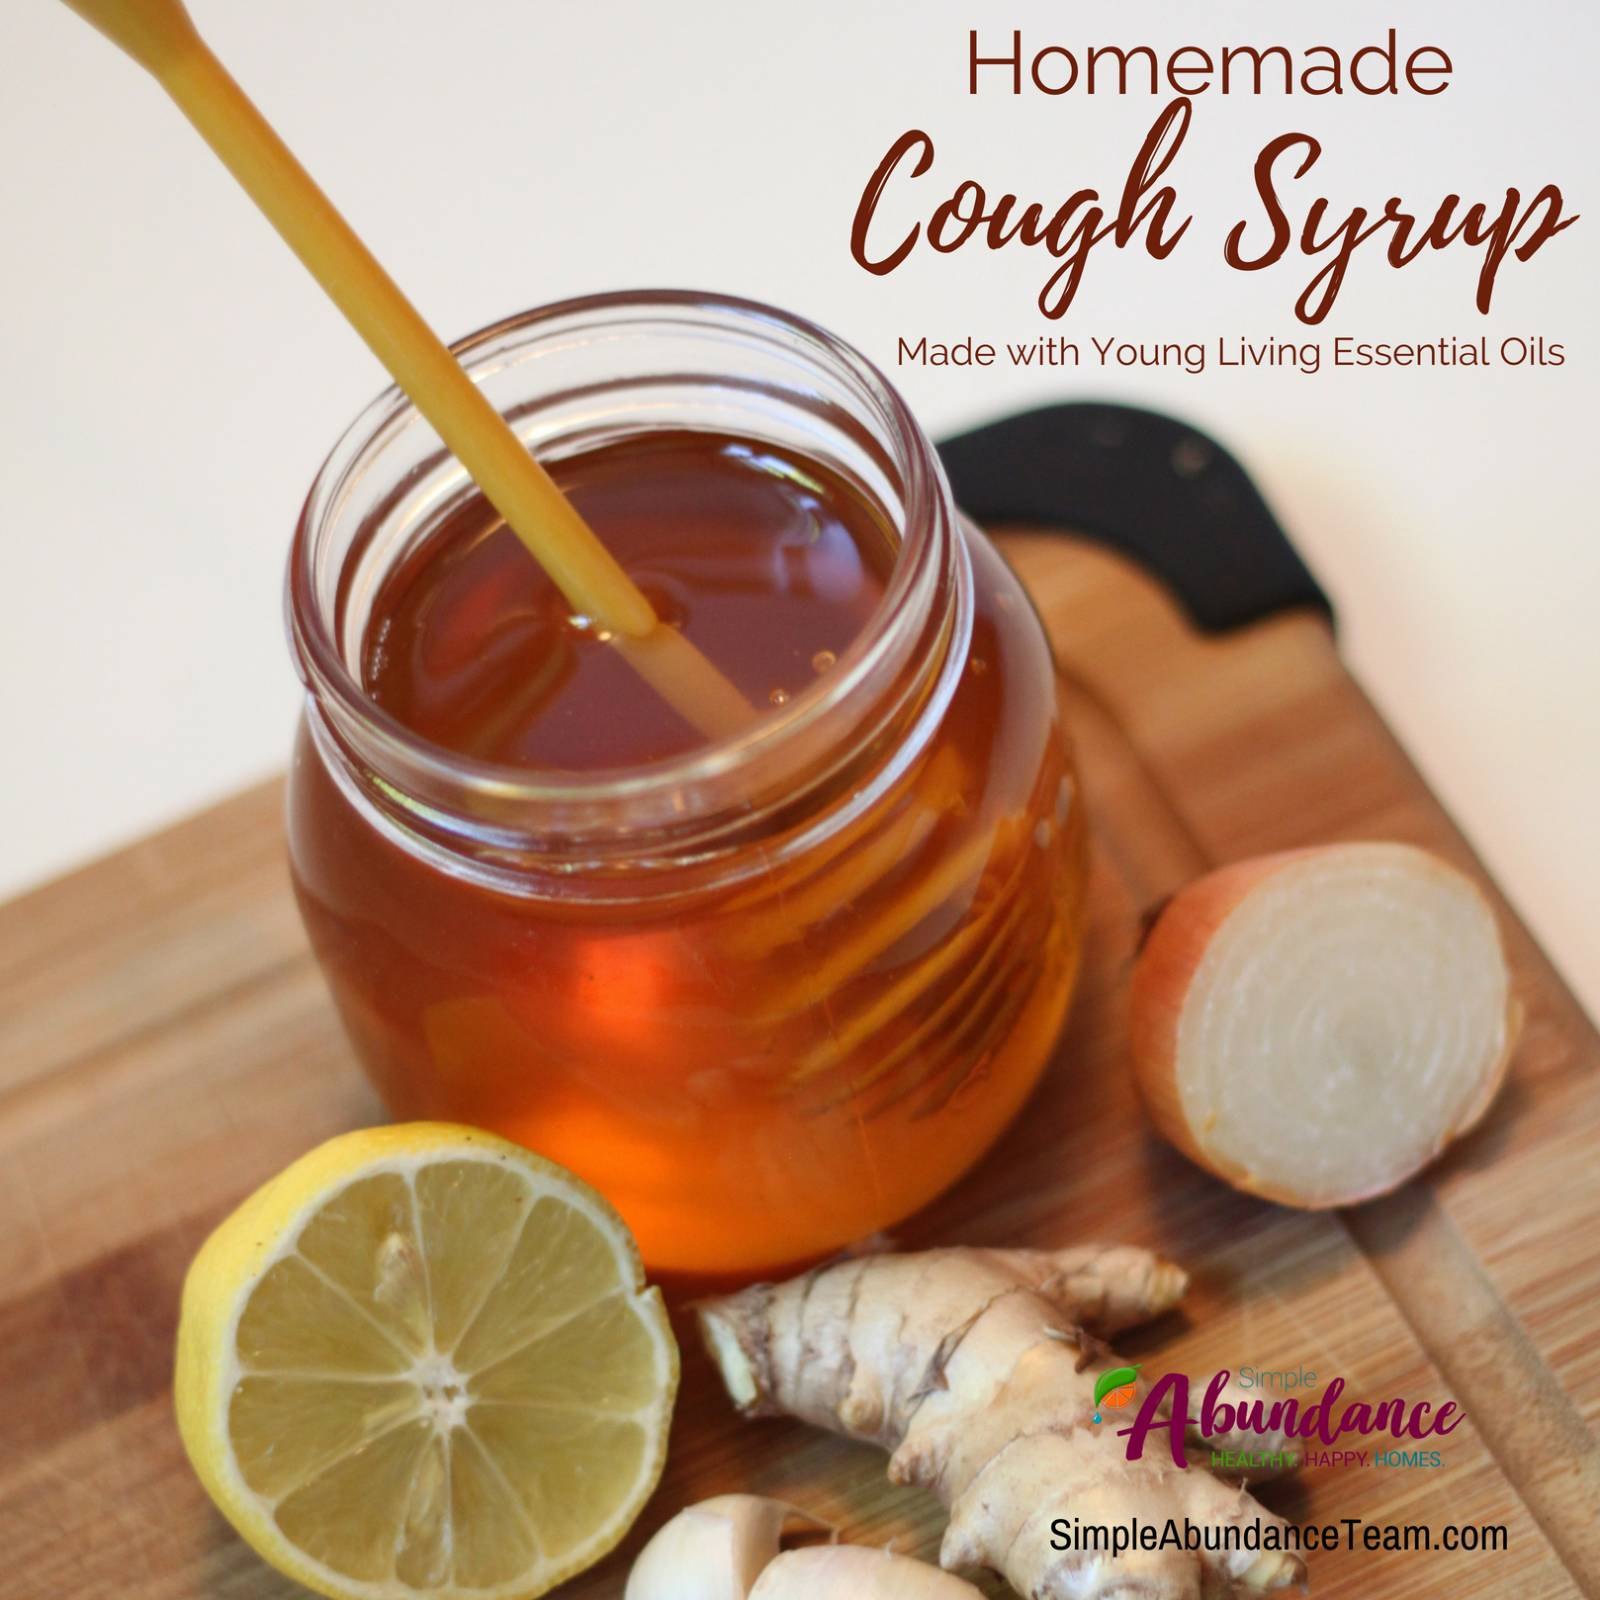 Effective Homemade Cough Syrup with Essential Oils